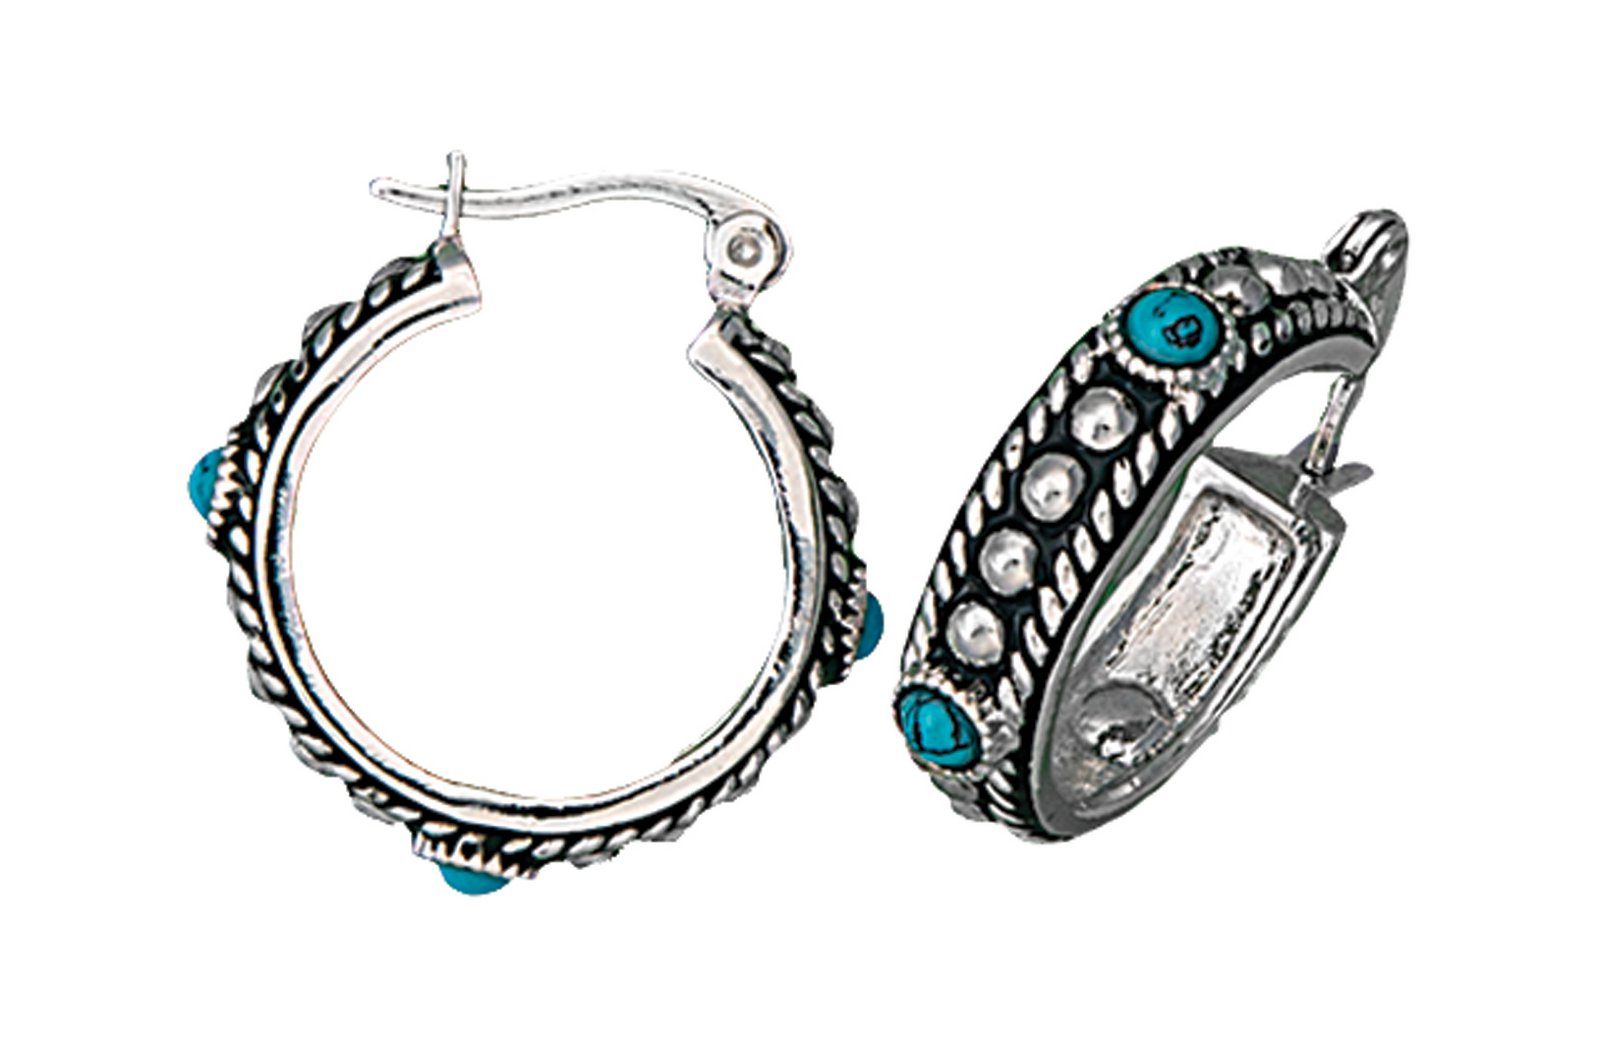 Montana Silversmiths Silver And Turquoise Studded Hoop Earrings